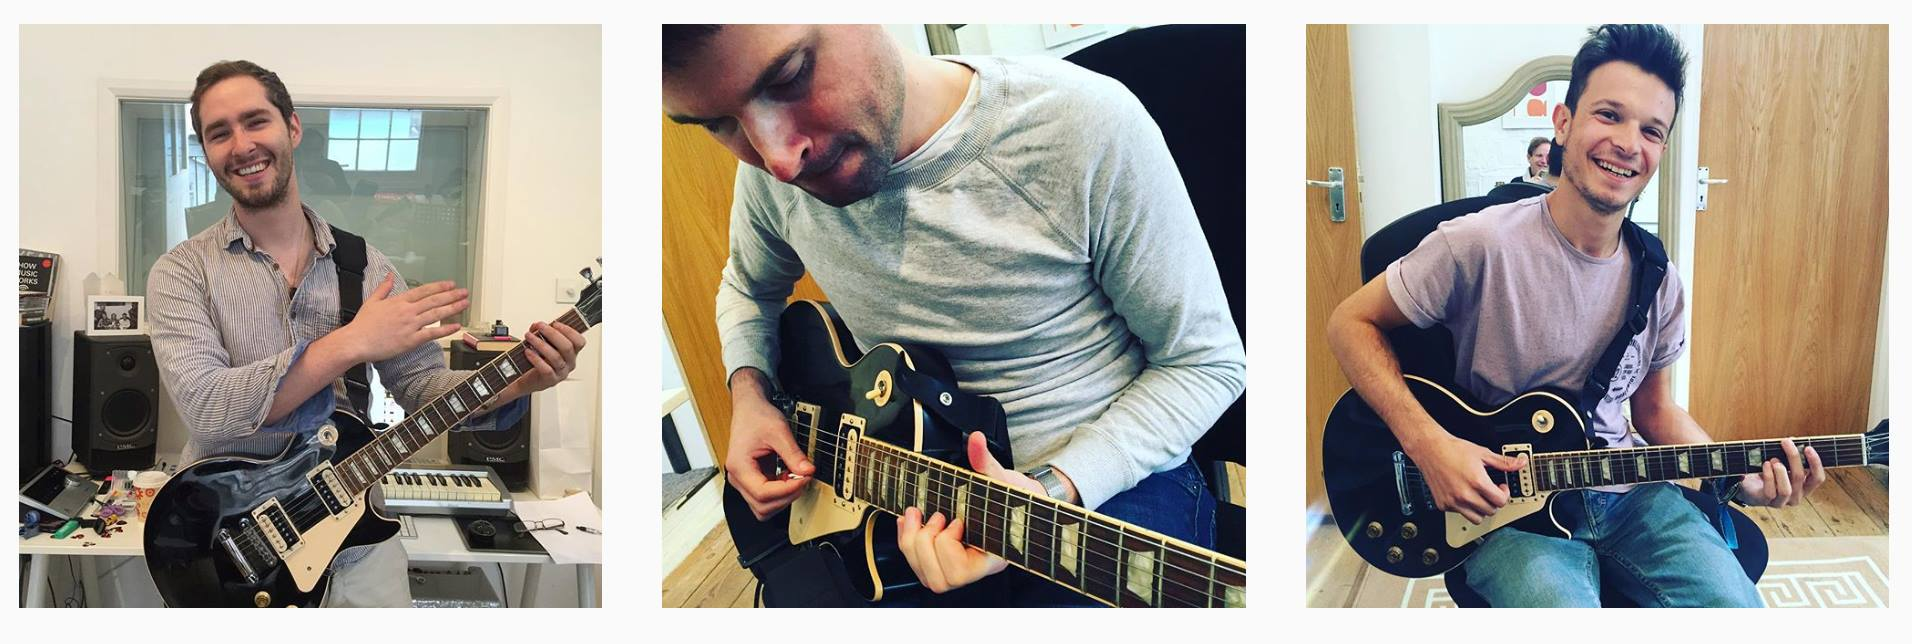 Electric Guitar Tuition Electric Guitar Lessons Electric Guitar Teachers